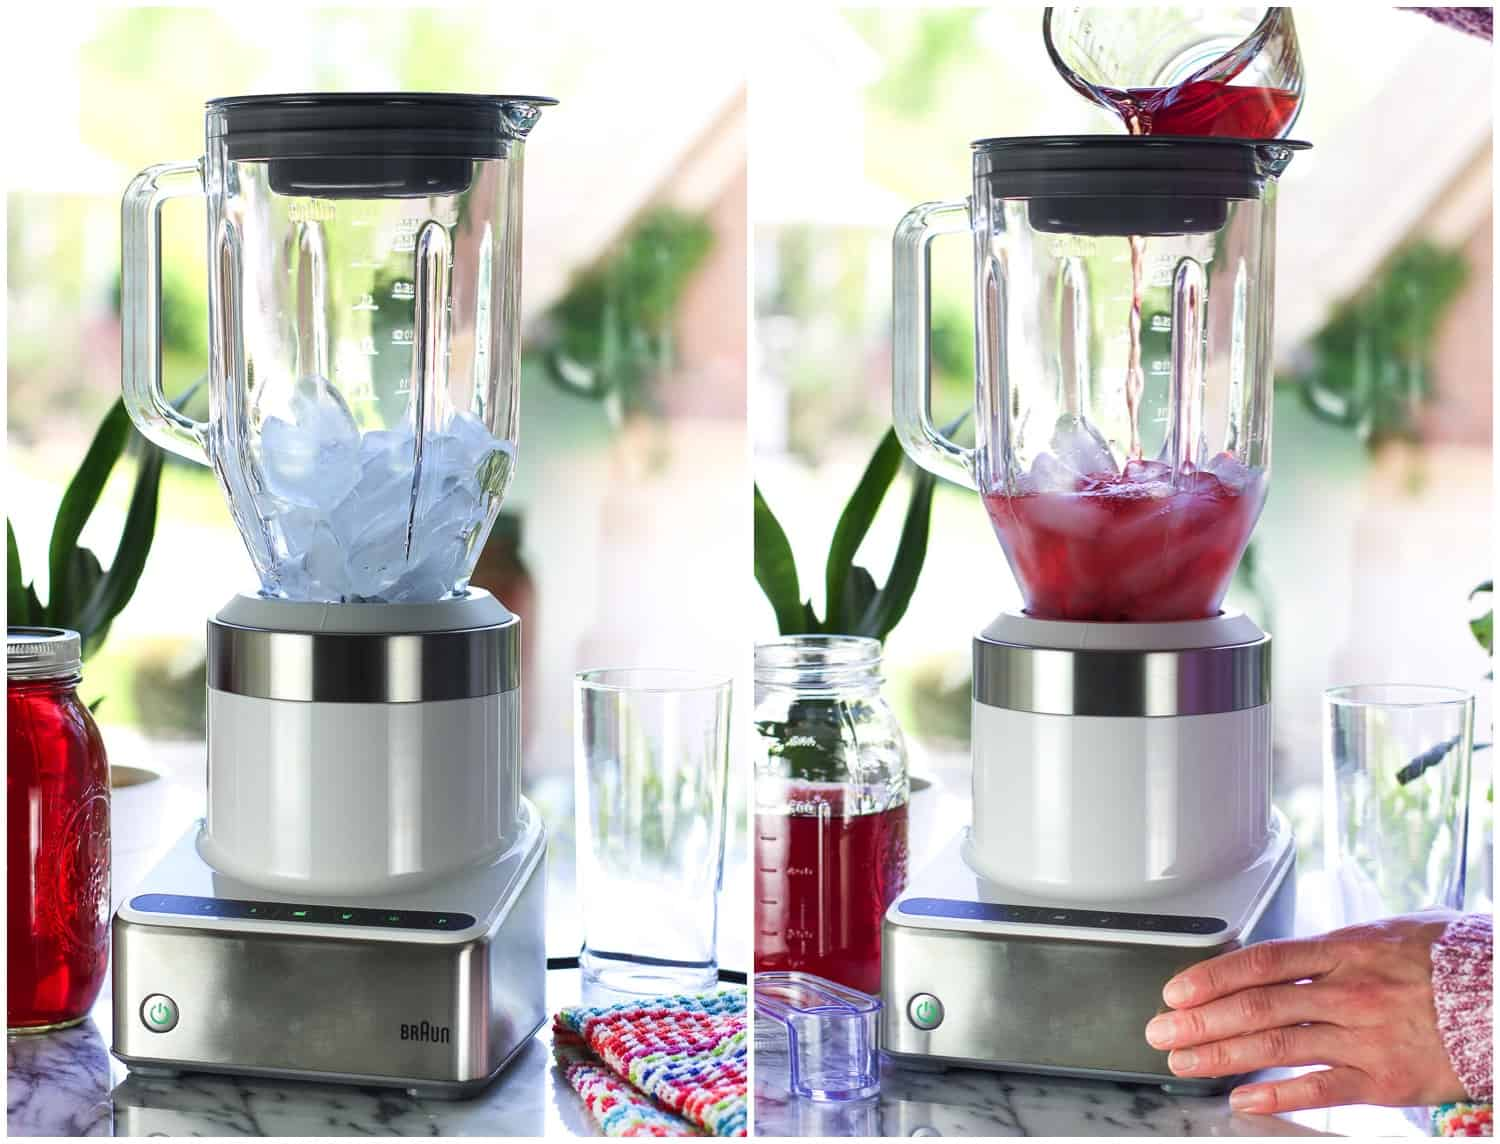 A side-by-side picture of ice in the blender and a woman pouring iced tea into the blender